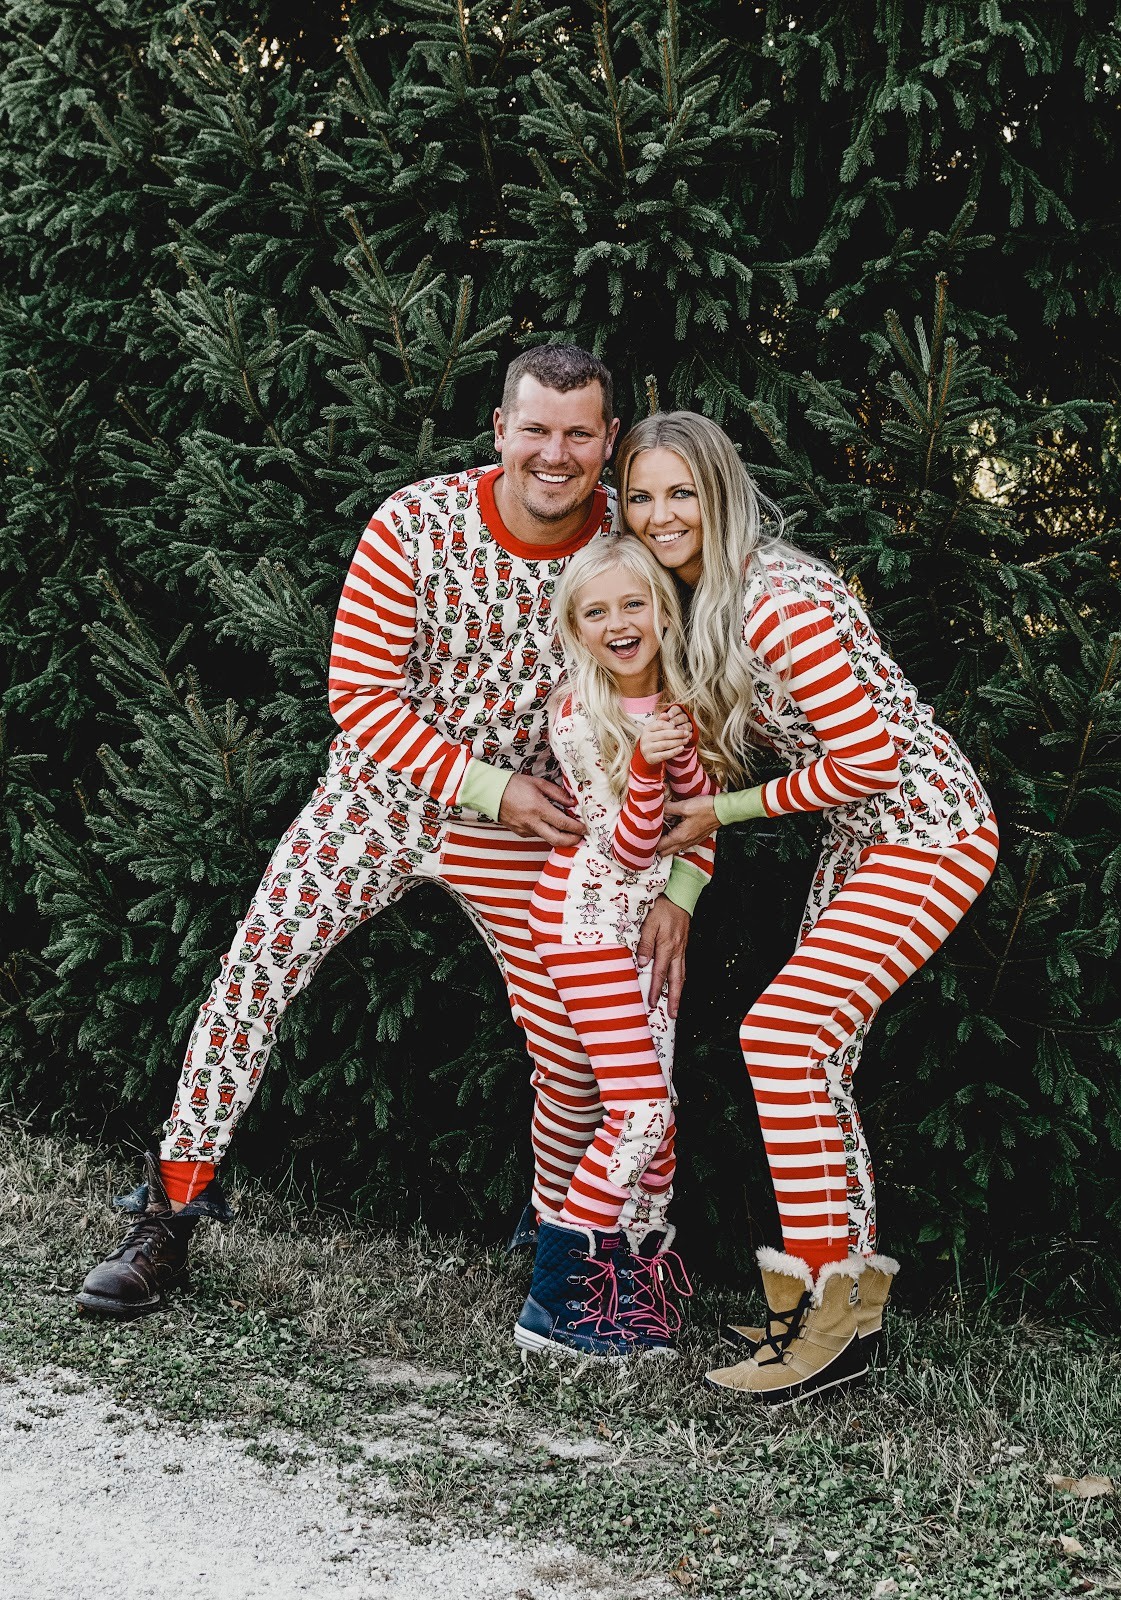 5 Sets of the Cutest Matching Family Christmas Pajamas! Daphnie Pearl Blog family christmas pajamas matching idea photo photographer picture pictures christmas tree buffalo plaid grinch polar bear fuzzy warm comfortable lounge snowflake